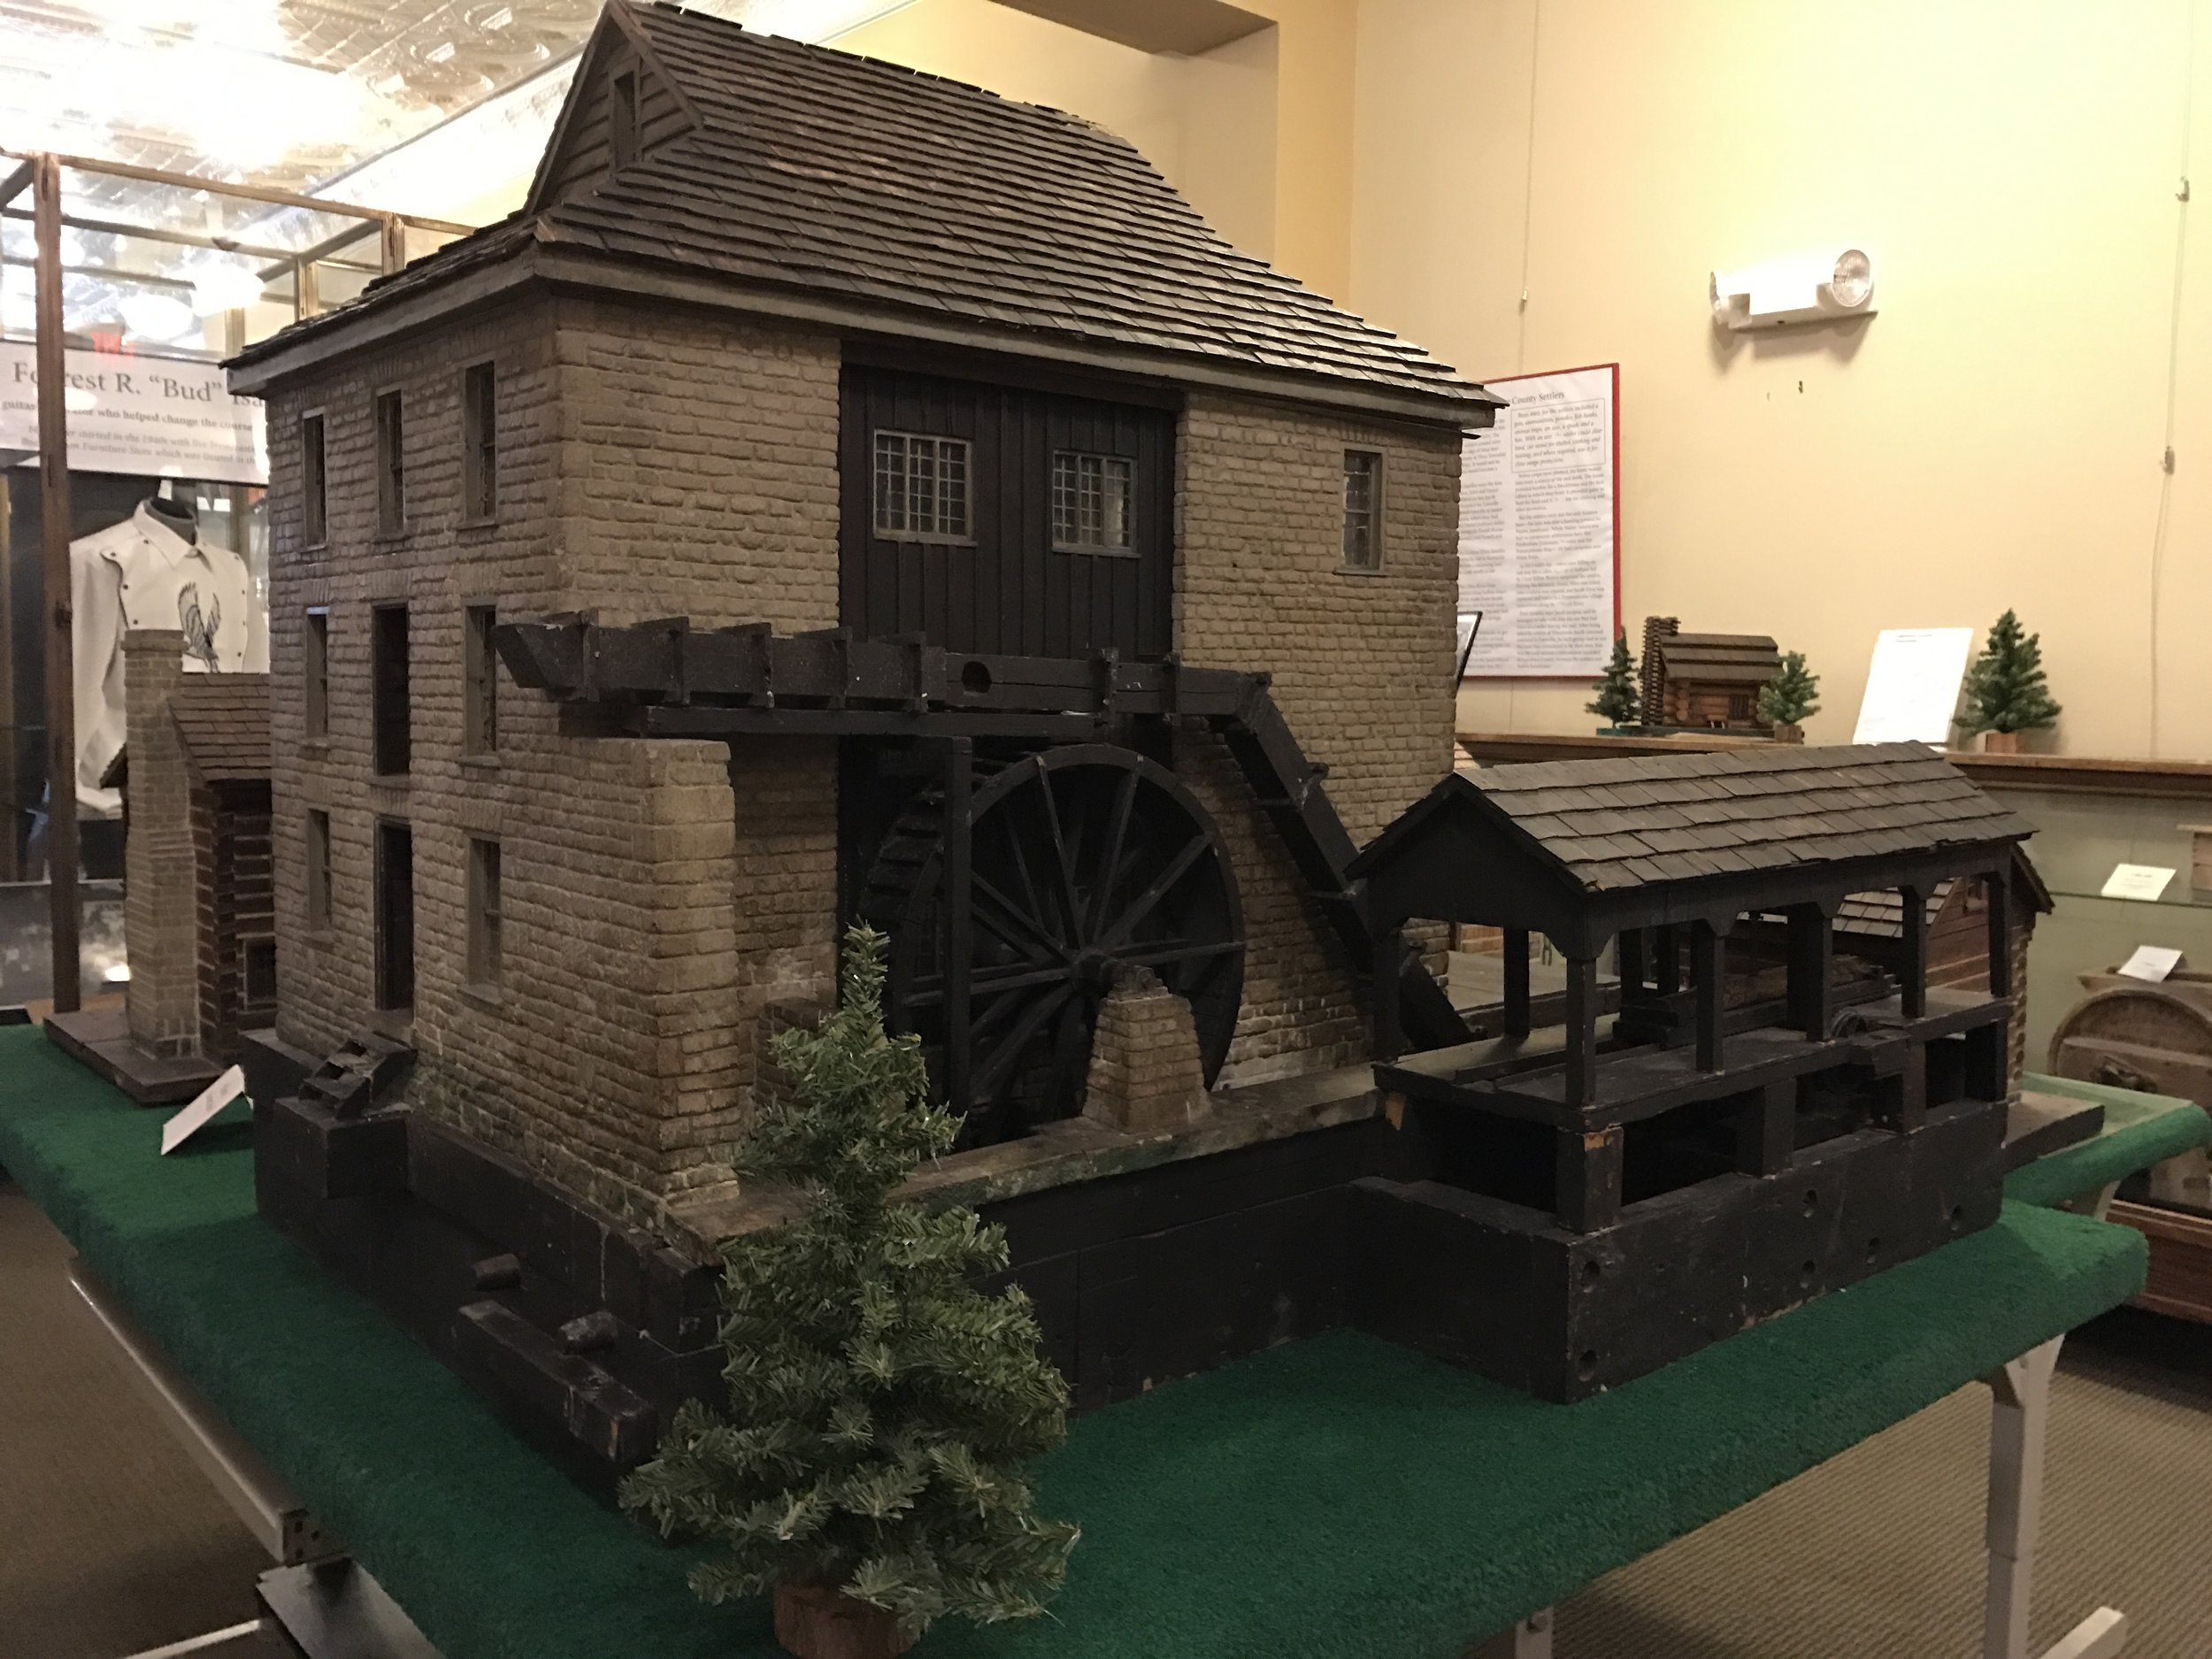 Spring Mill State Park employees Joe Horvath, Lawrence Lawyer and Louis Green constructed this Spring Mill gristmill replica in 1934. It has been exhibited at the Indiana State Fair and the Indianapolis Art Museum. It is located at the Lawrence County Museum.